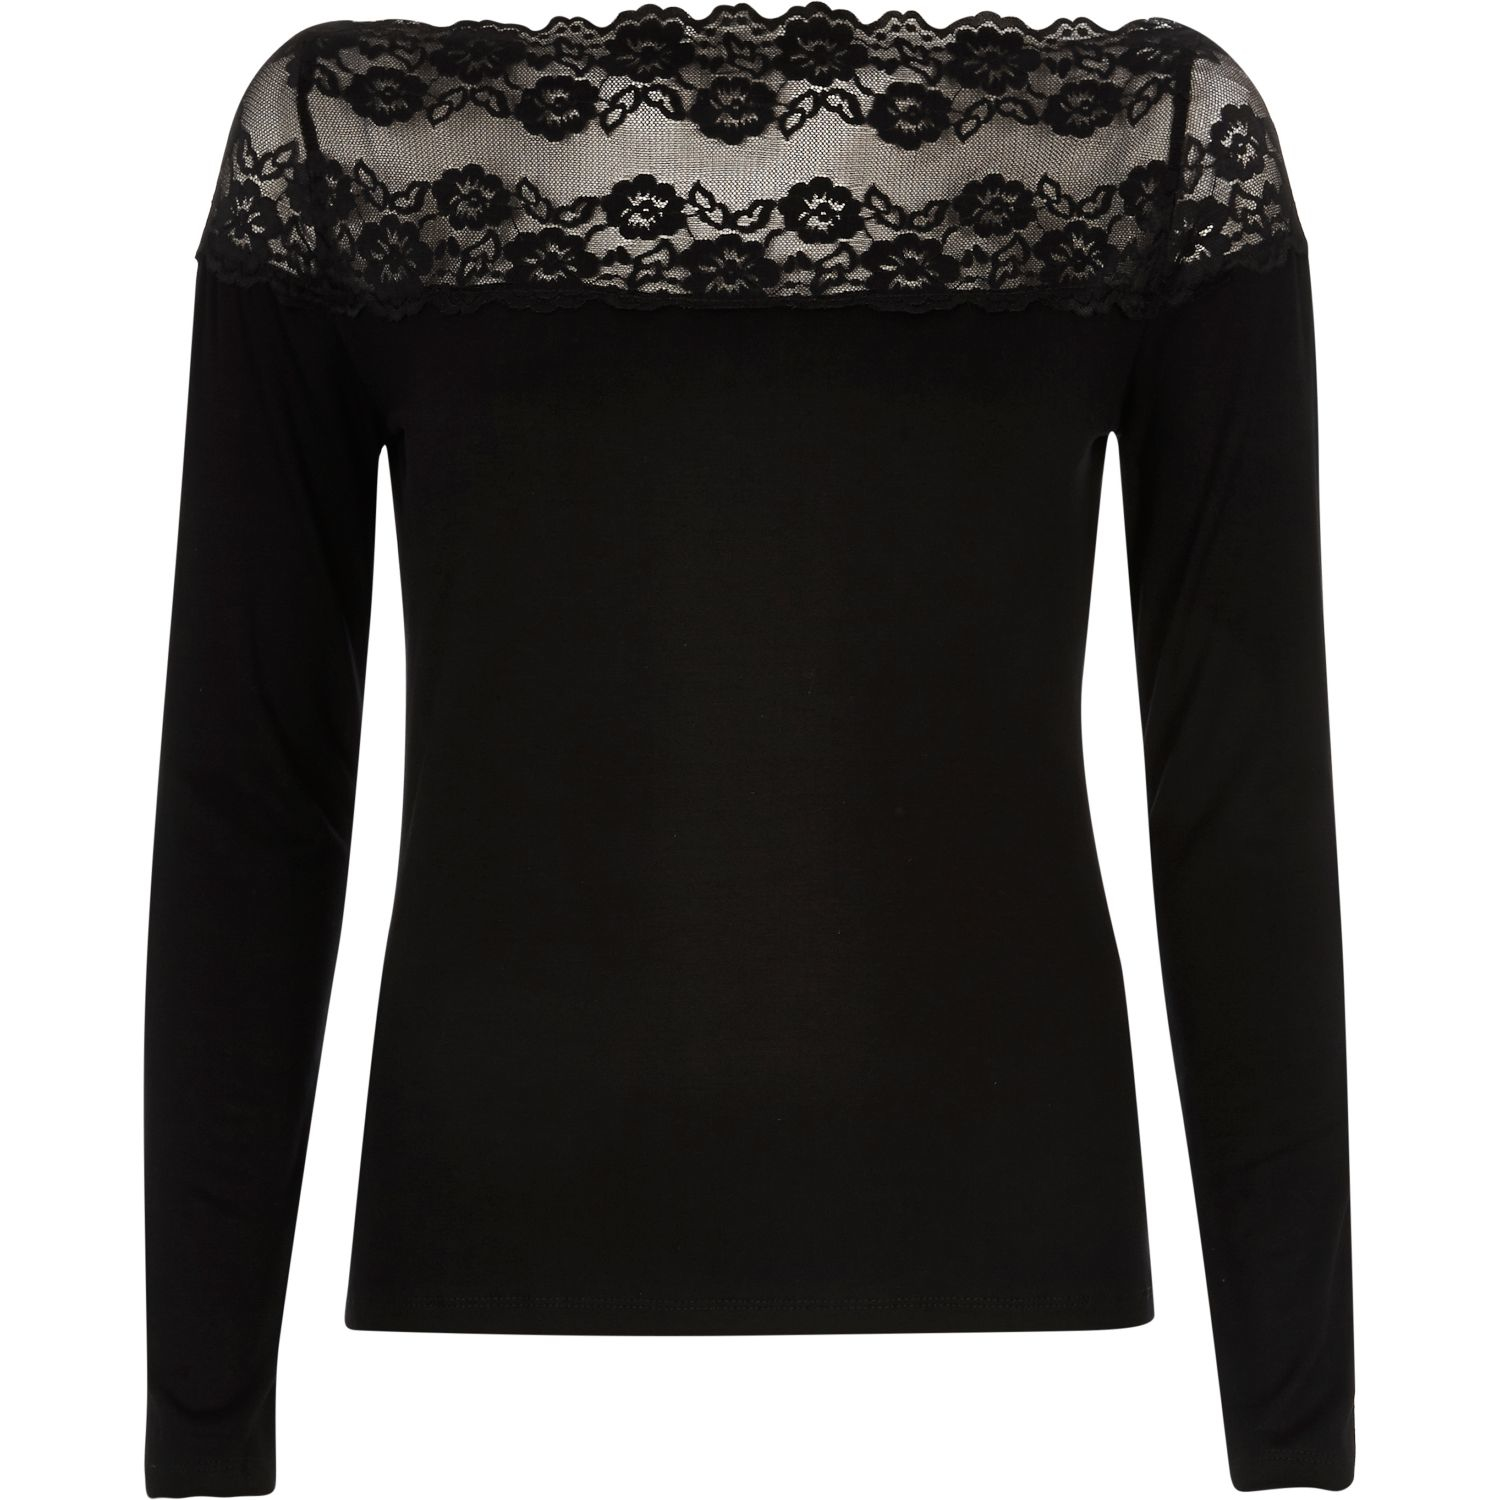 Lace In Lyst Neck Black River Top Island Bardot nEHAg8xB